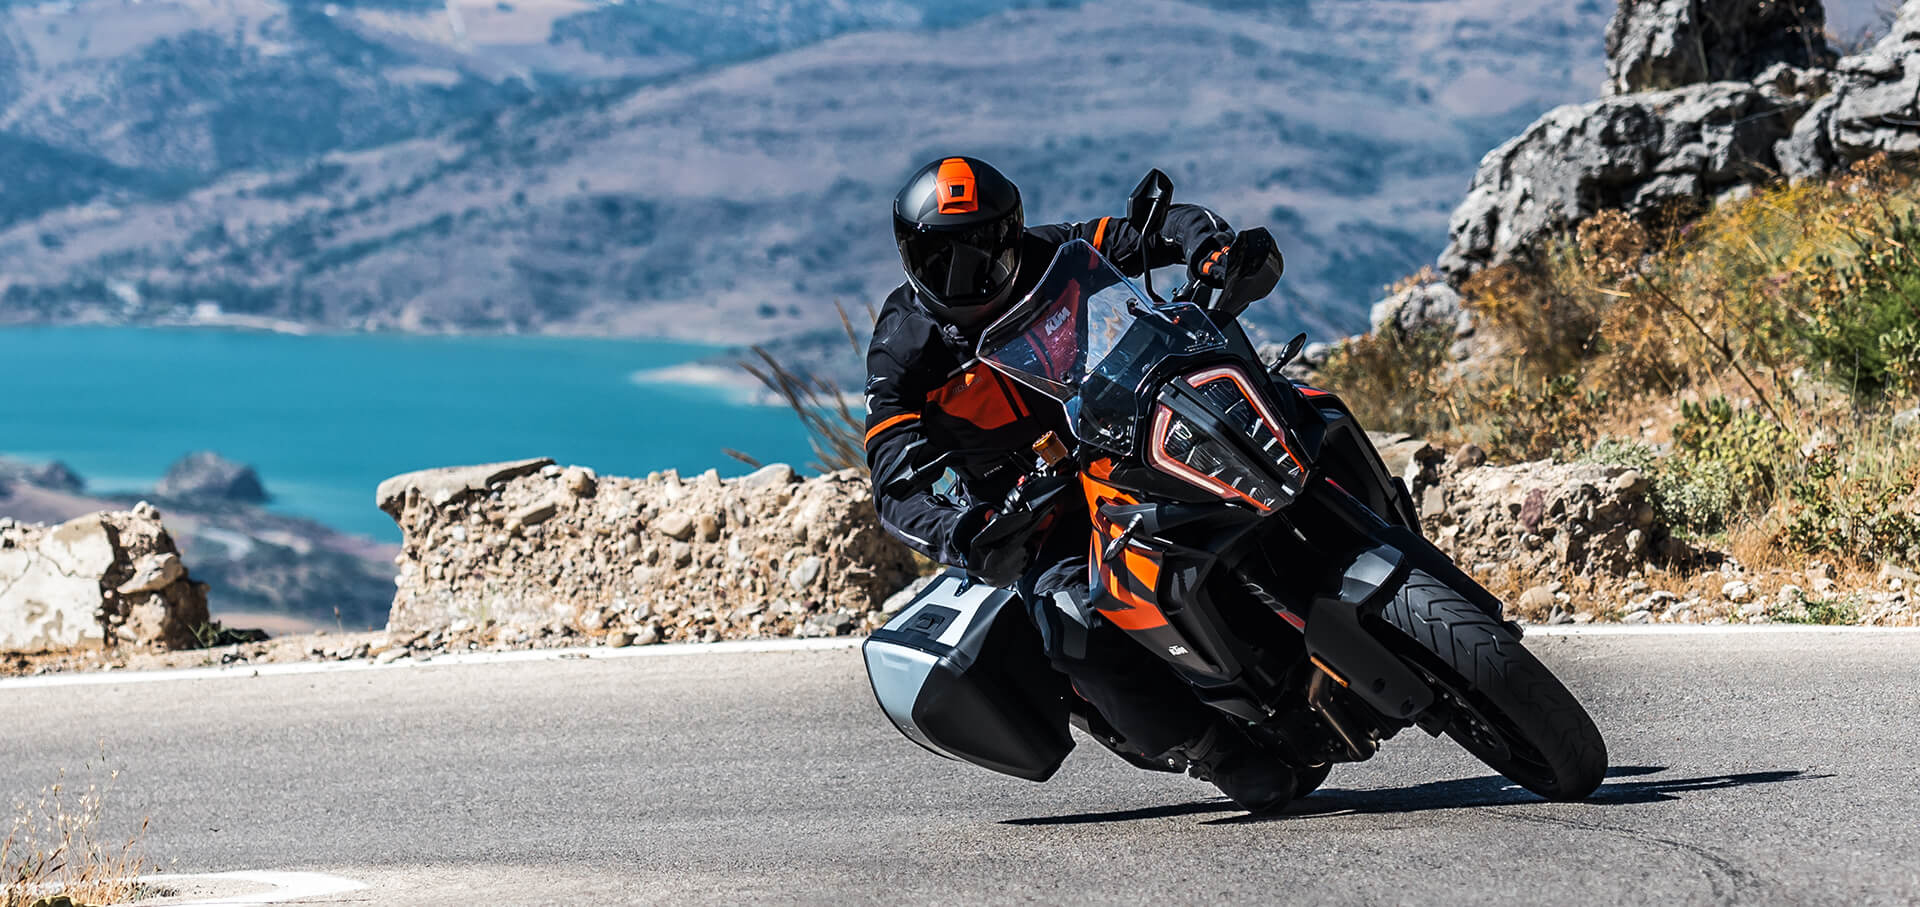 Spotted: 2020 KTM 1290 Super Adventure on the go!